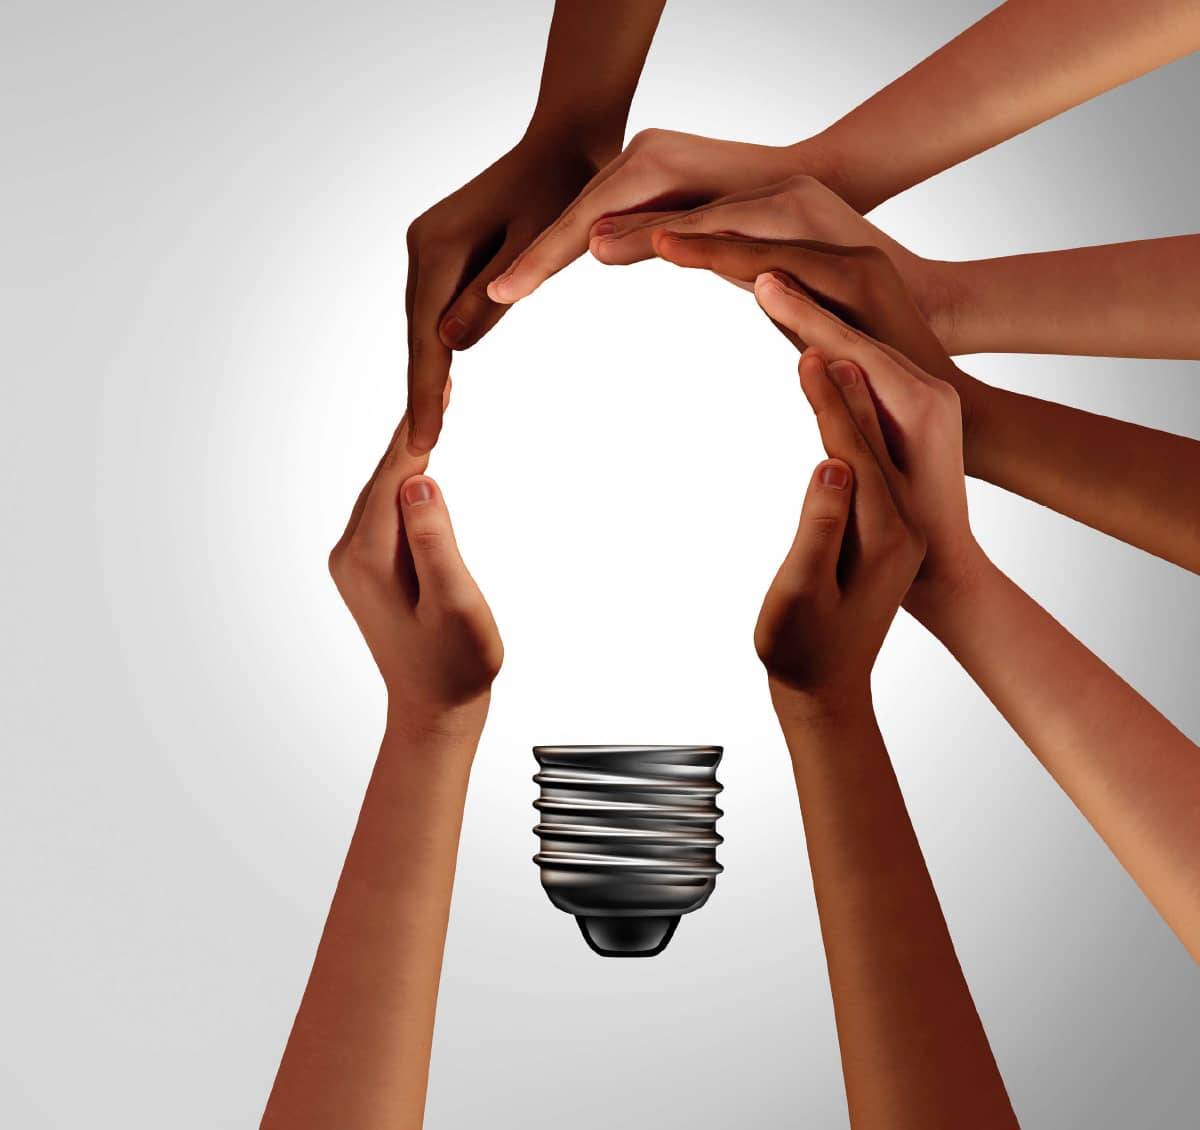 Hands together representing a light bulb glowing